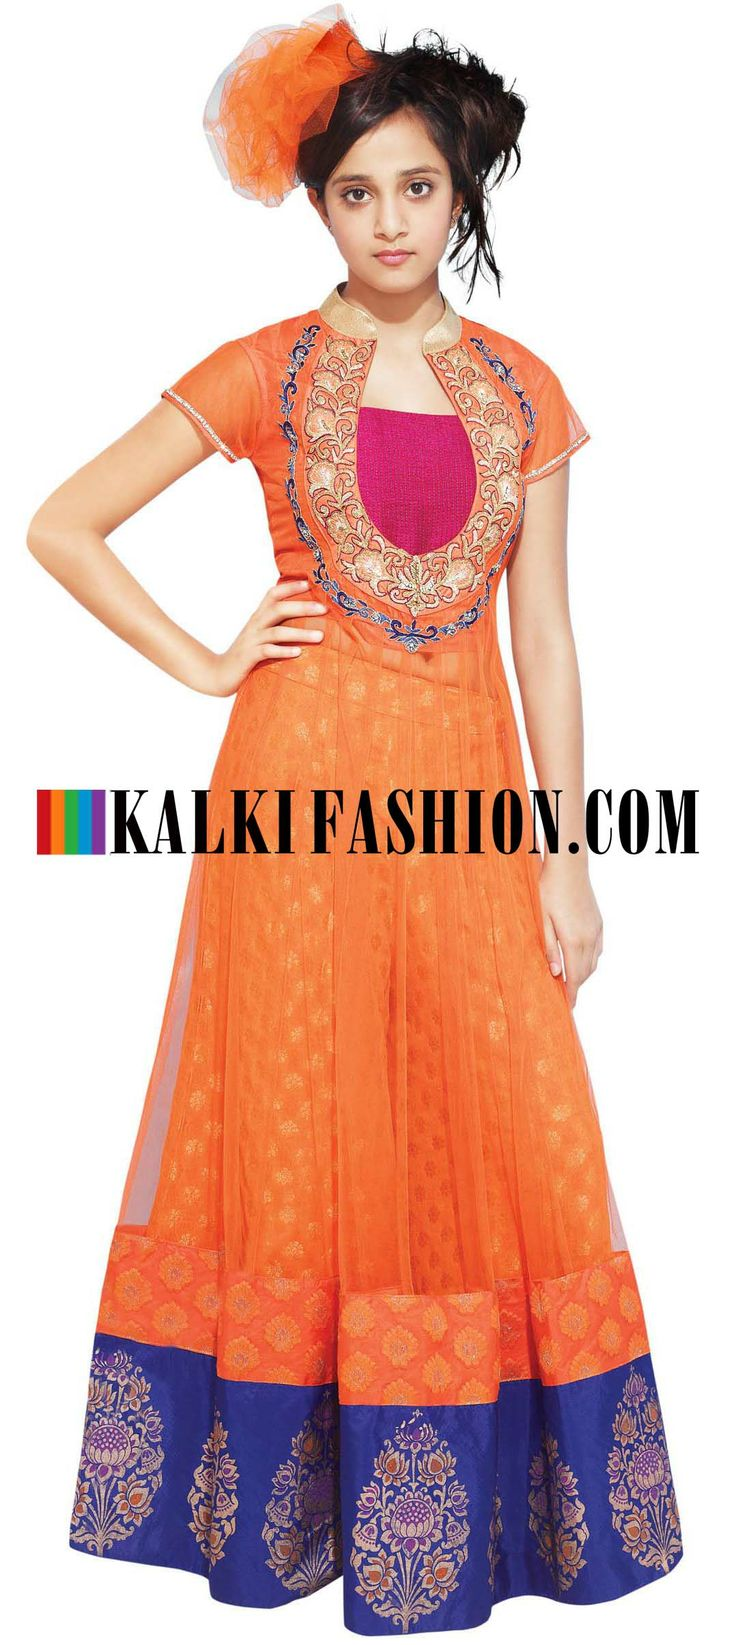 Buy Online from the link below. We ship worldwide (Free Shipping over US$100)   http://www.kalkifashion.com/orange-anarkali-lehenga-embellished-in-gotta-patti-and-resham-emboridery.html